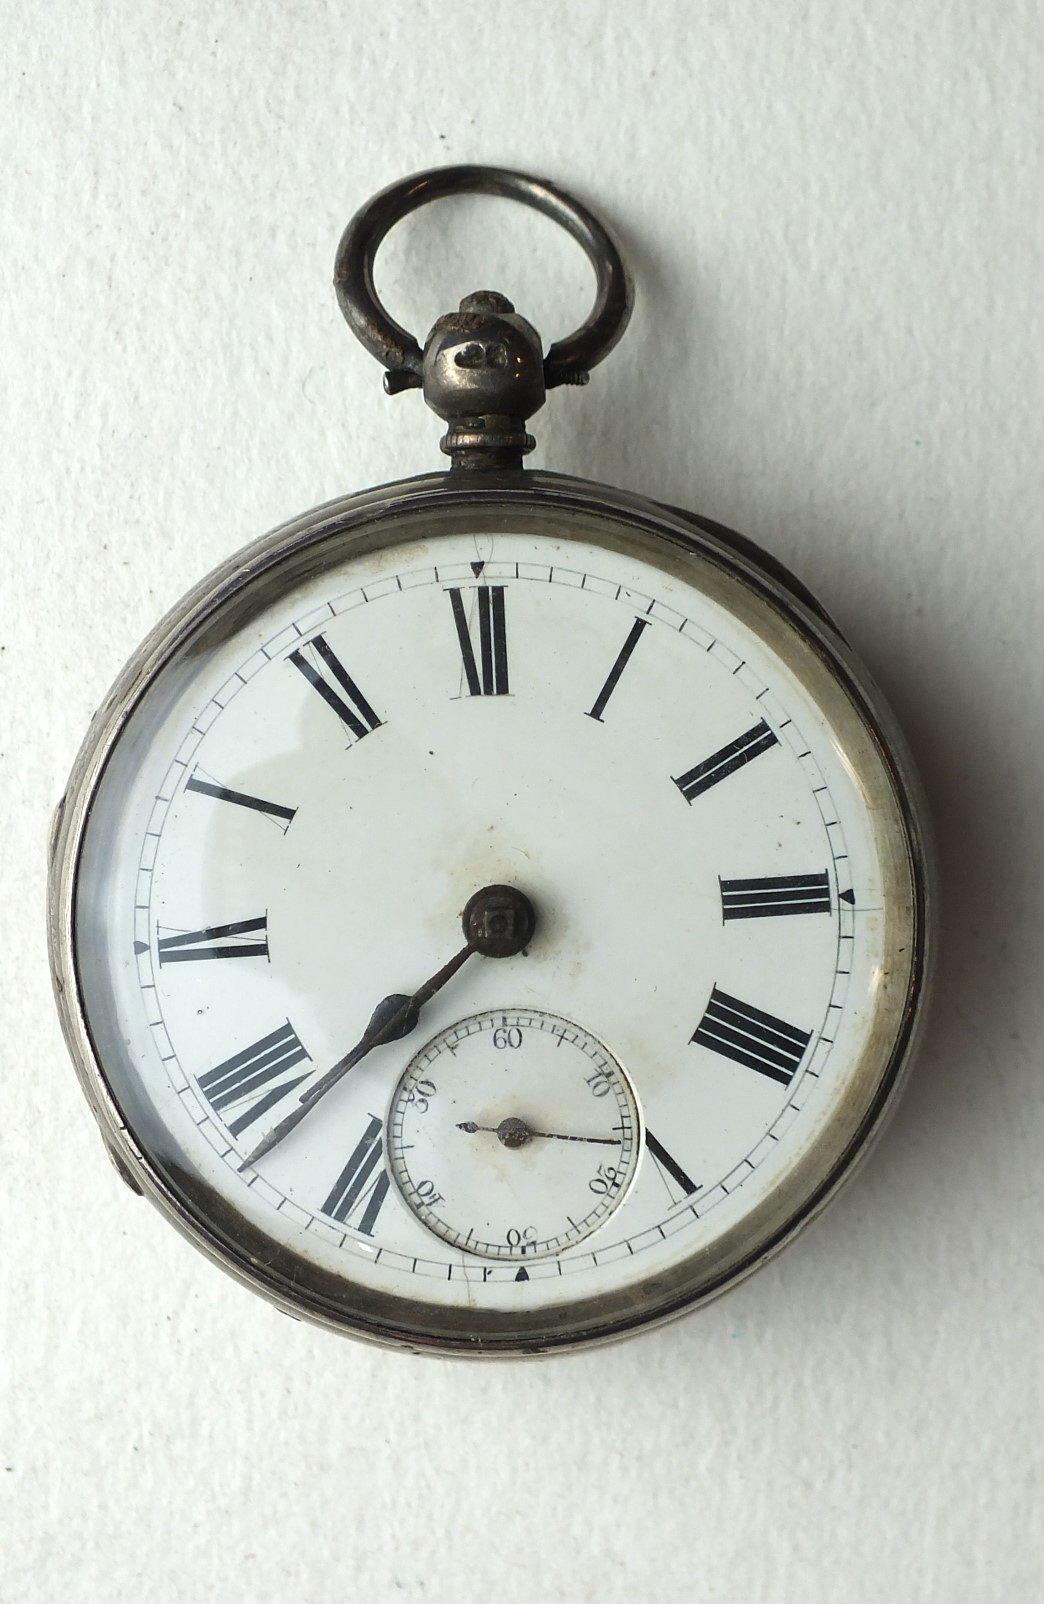 Lot 245 - A silver-cased open-face fusée pocket watch, the white enamel dial with seconds subsidiary,